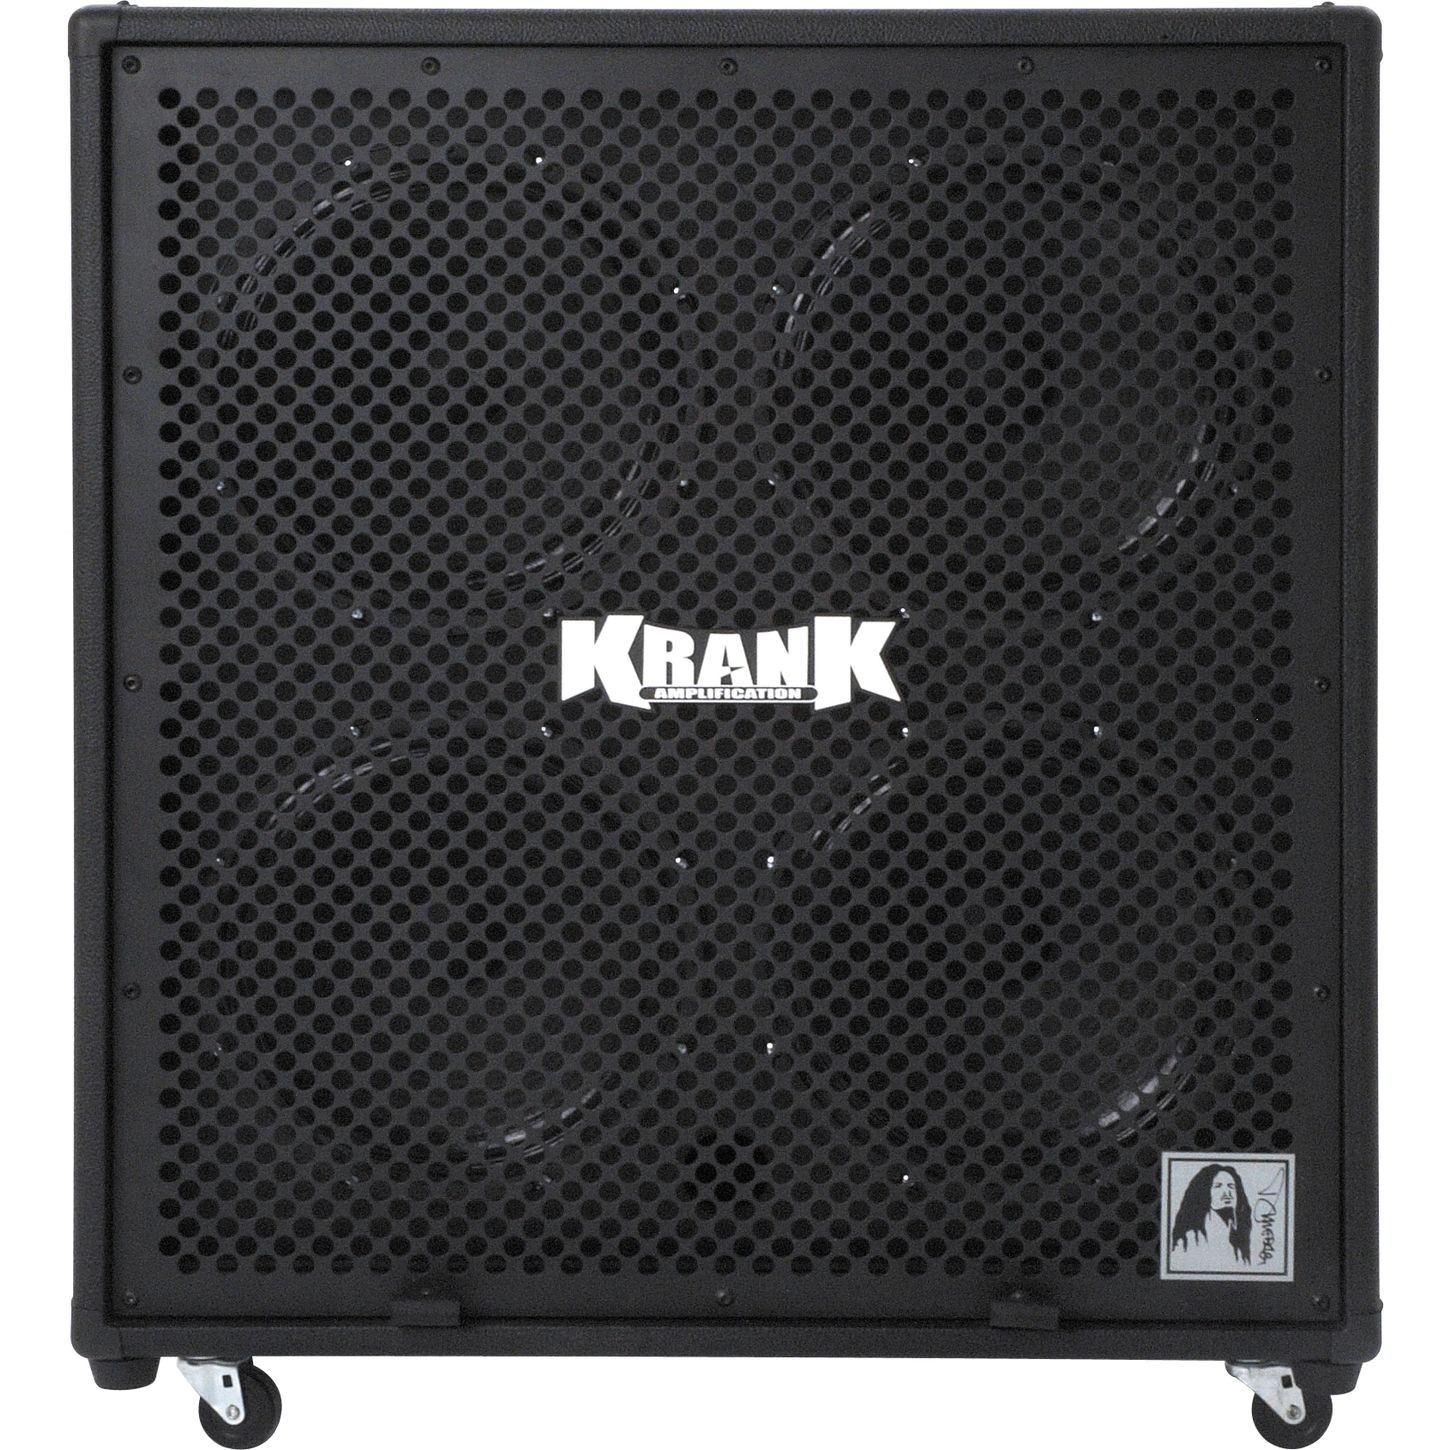 Krank Krankenstein Speaker Cabinet Musician Friend